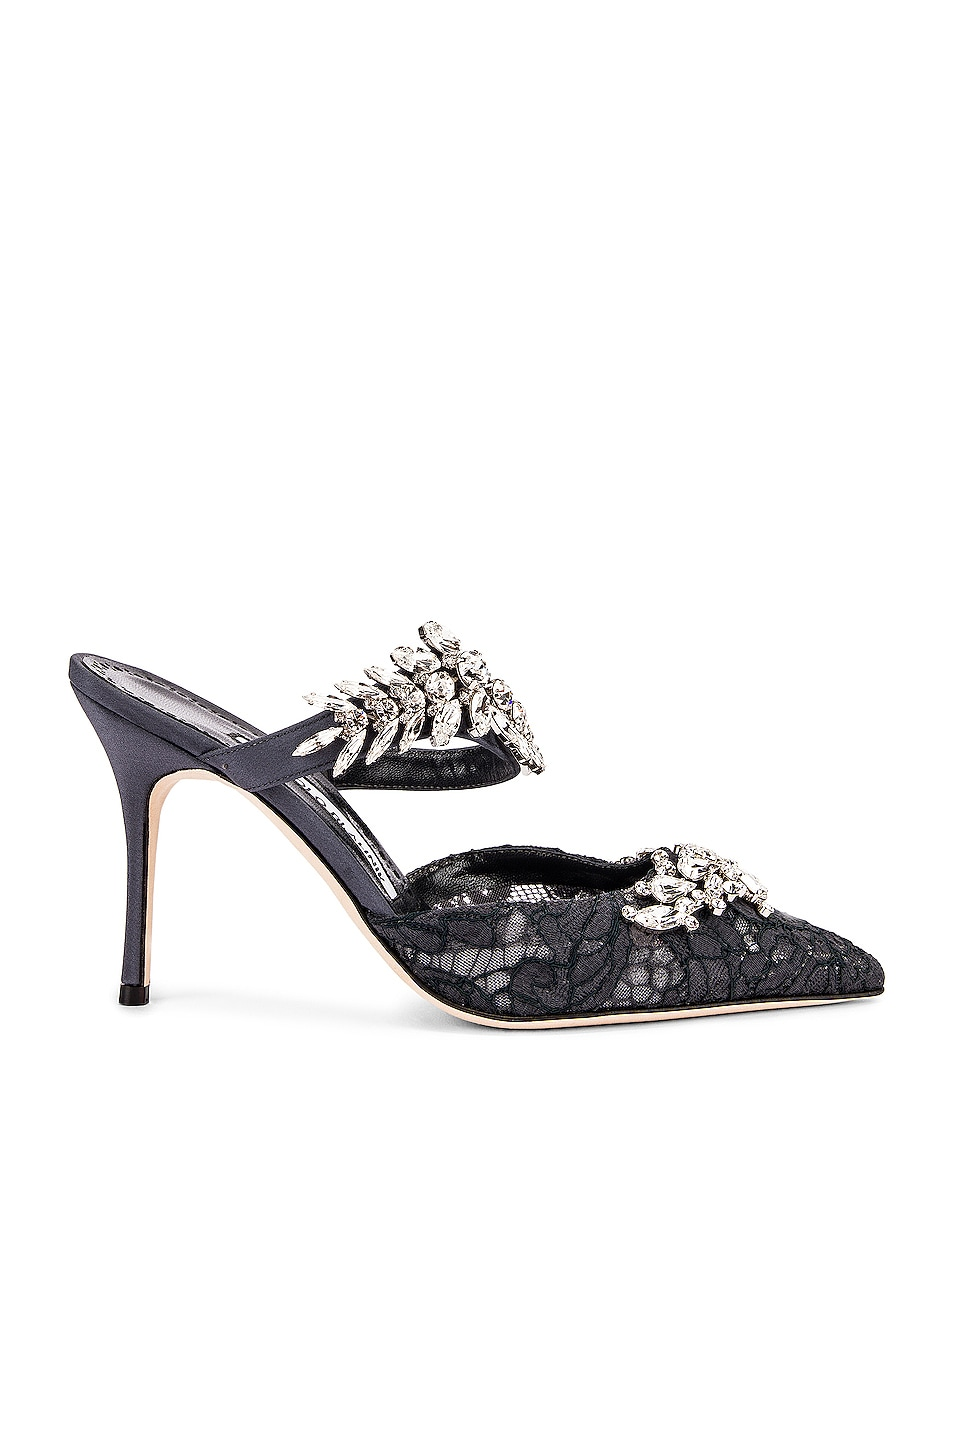 f429bd08e4cad Image 2 of Manolo Blahnik Lurum 90 Mule in Blue Grey